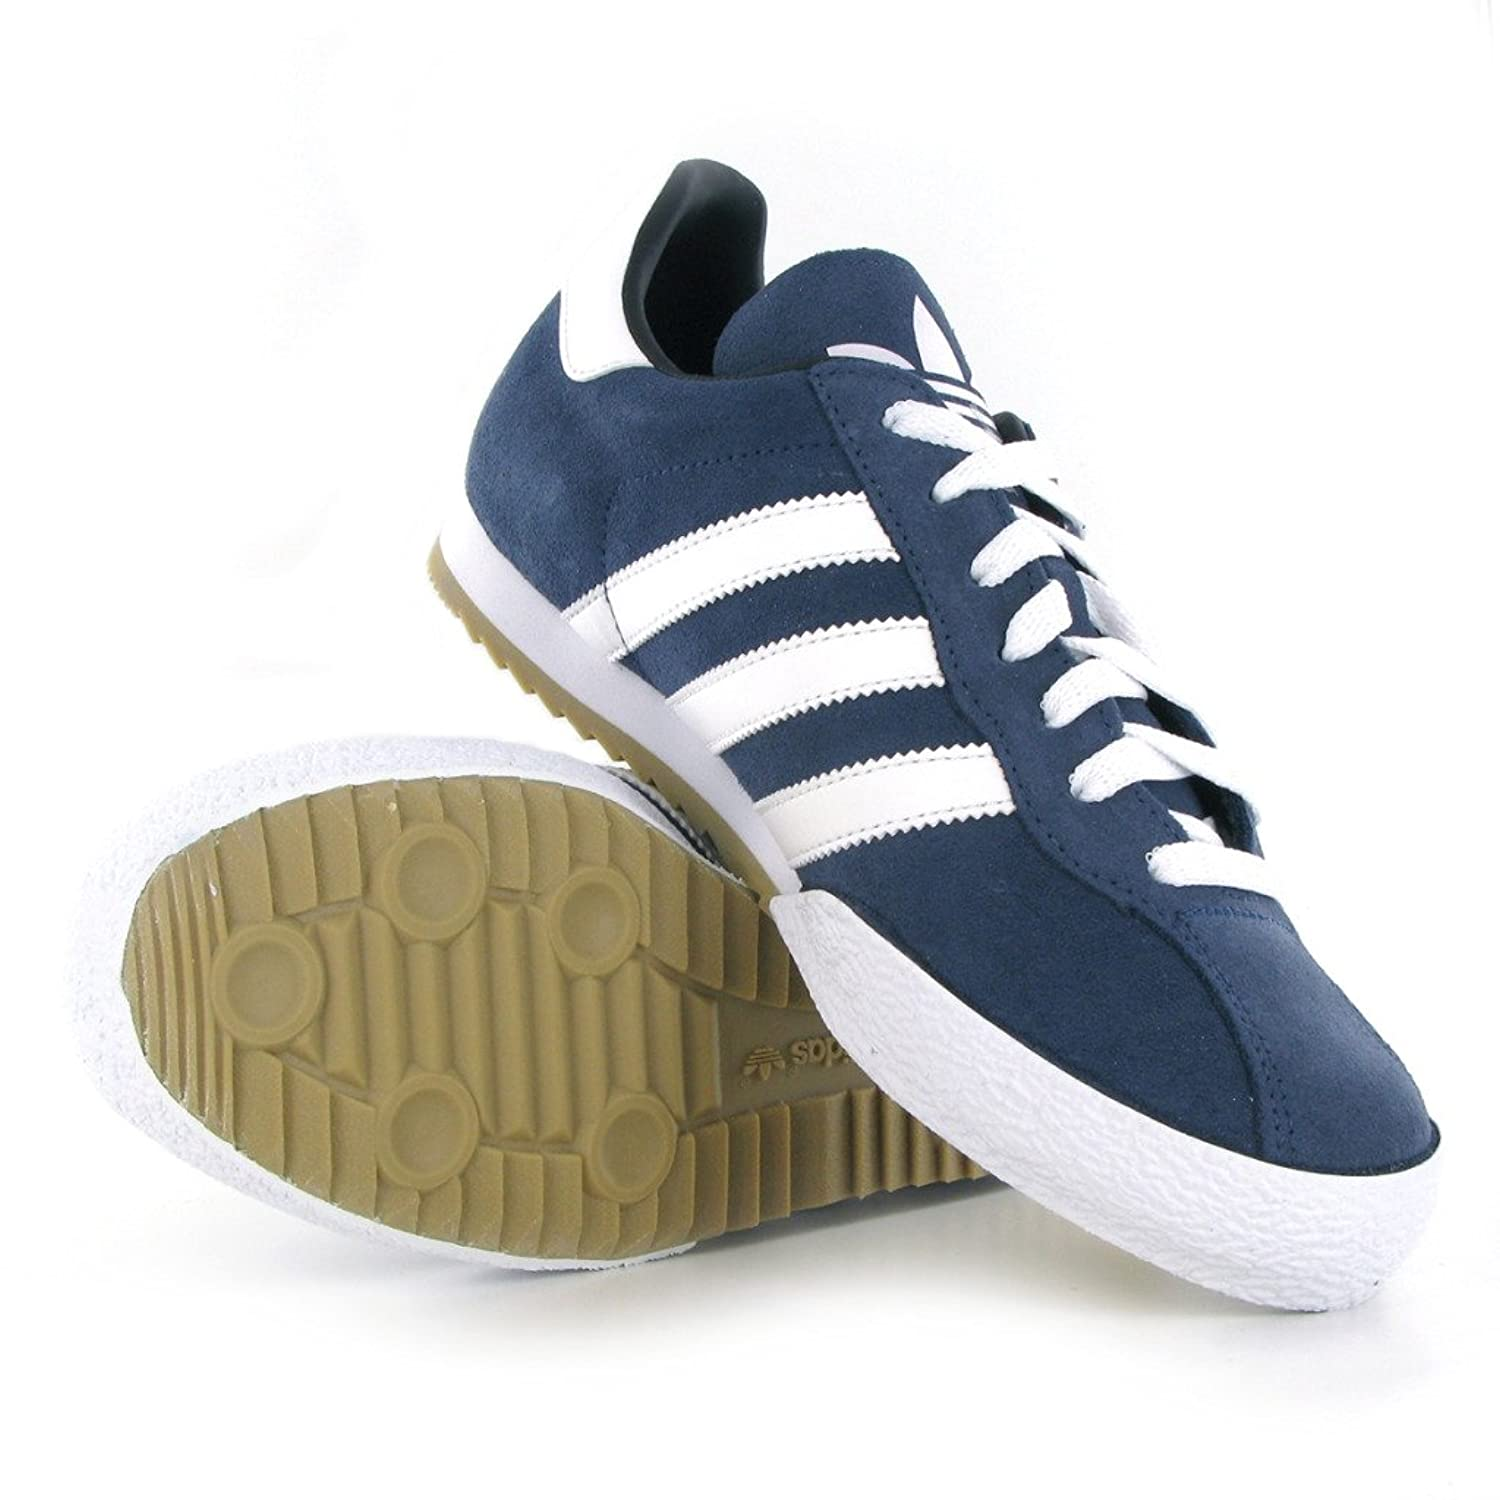 6bd458896bd283 adidas Originals Samba Super Suede Trainers Mens Trainers Shop Mens ...